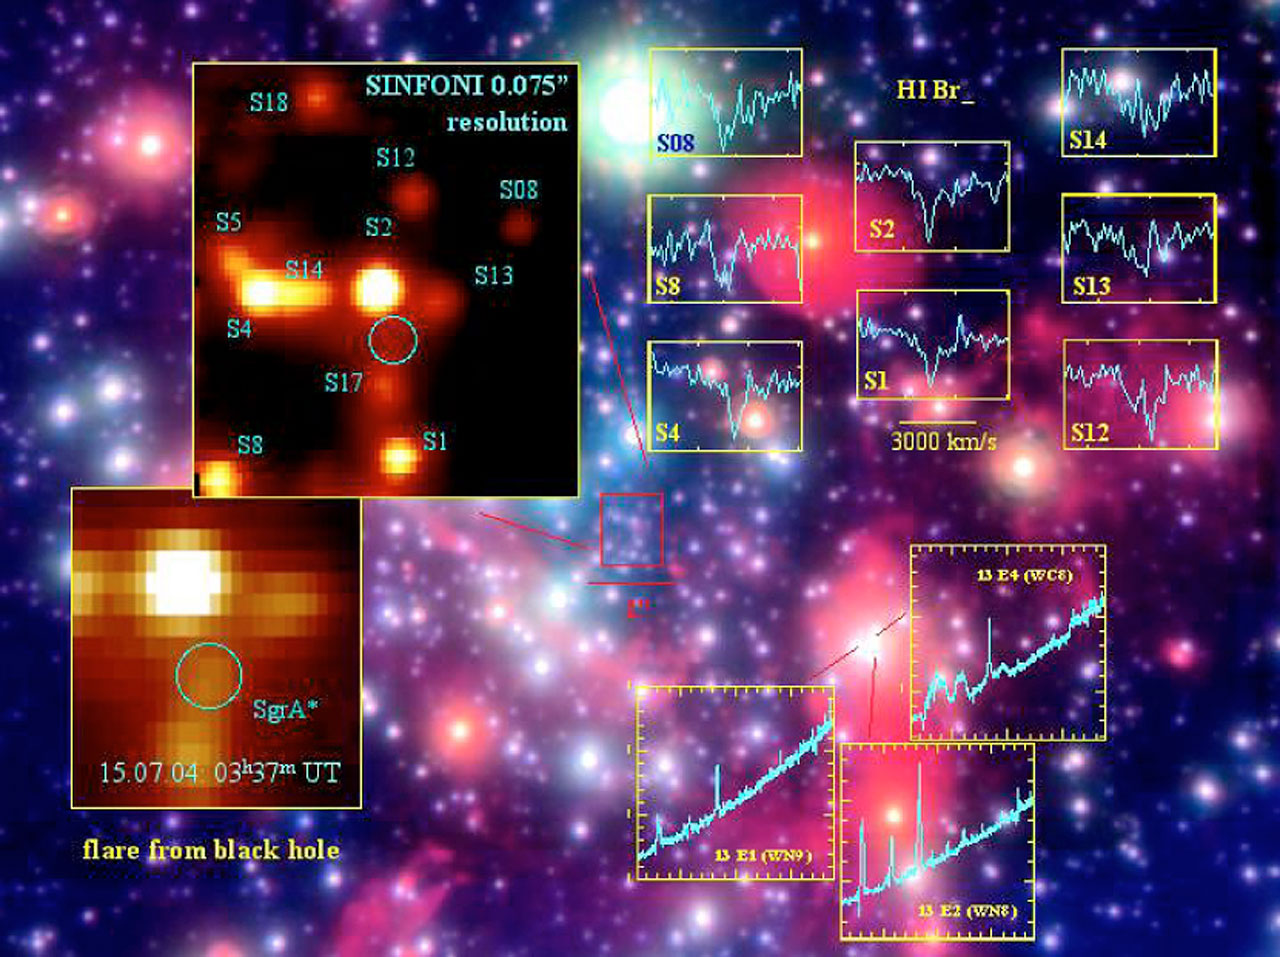 SINFONI Observations of the Galactic Centre